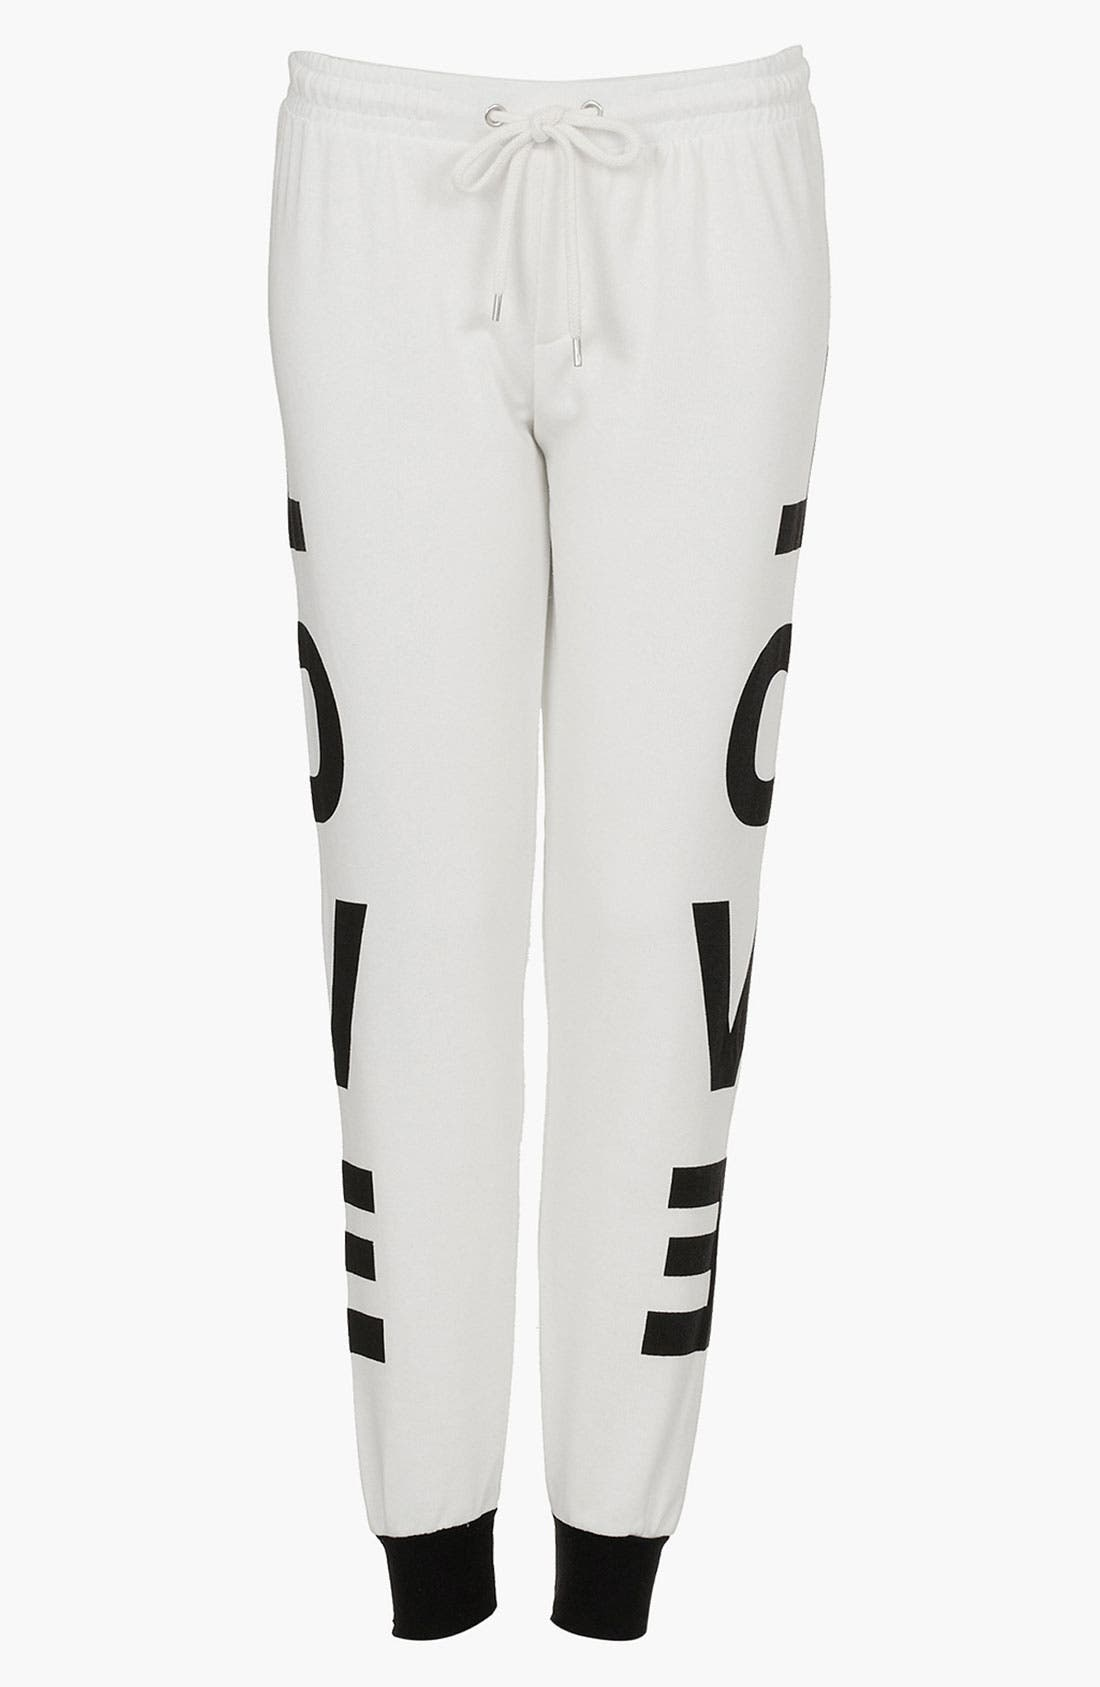 Alternate Image 1 Selected - Topshop 'Love' Graphic Tapered Sweatpants